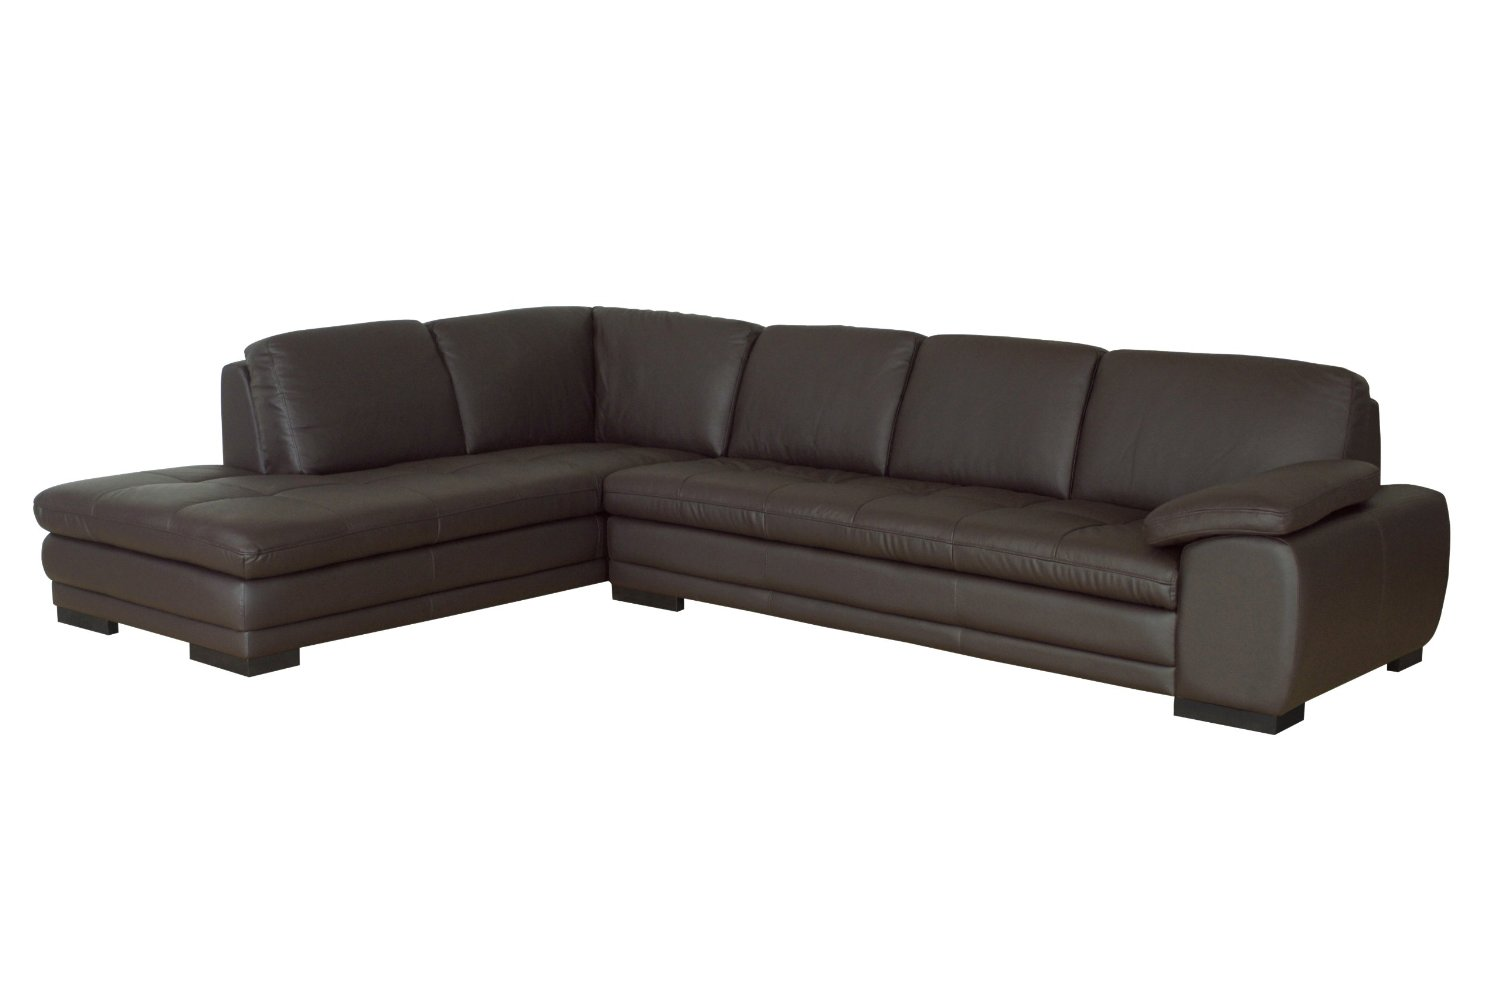 leather sofa couch sleepers for small areas sectional furniture guide org